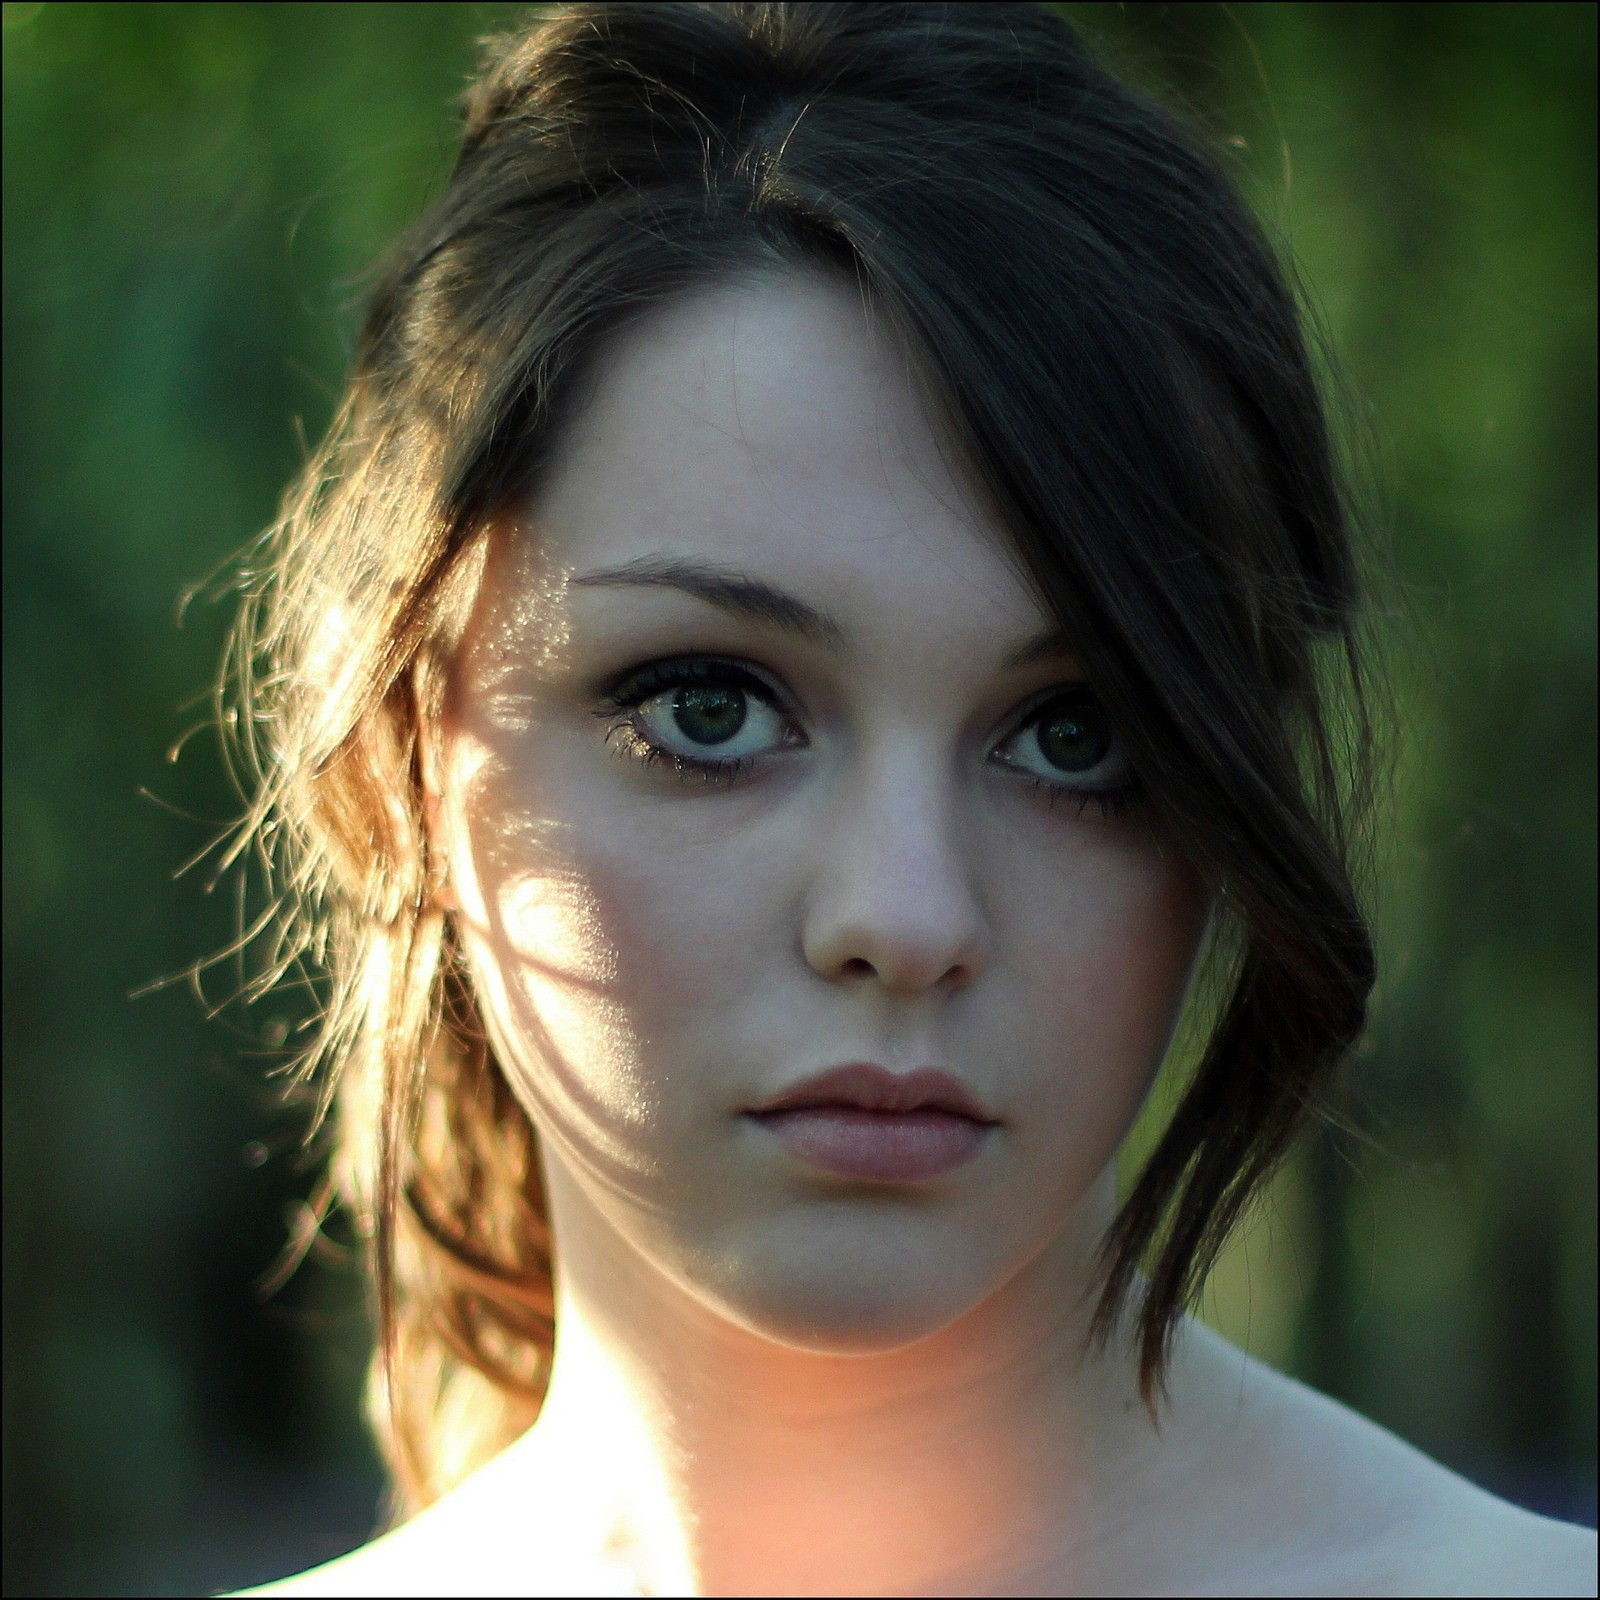 Imogen Dyer. The most beautiful woman on the internet